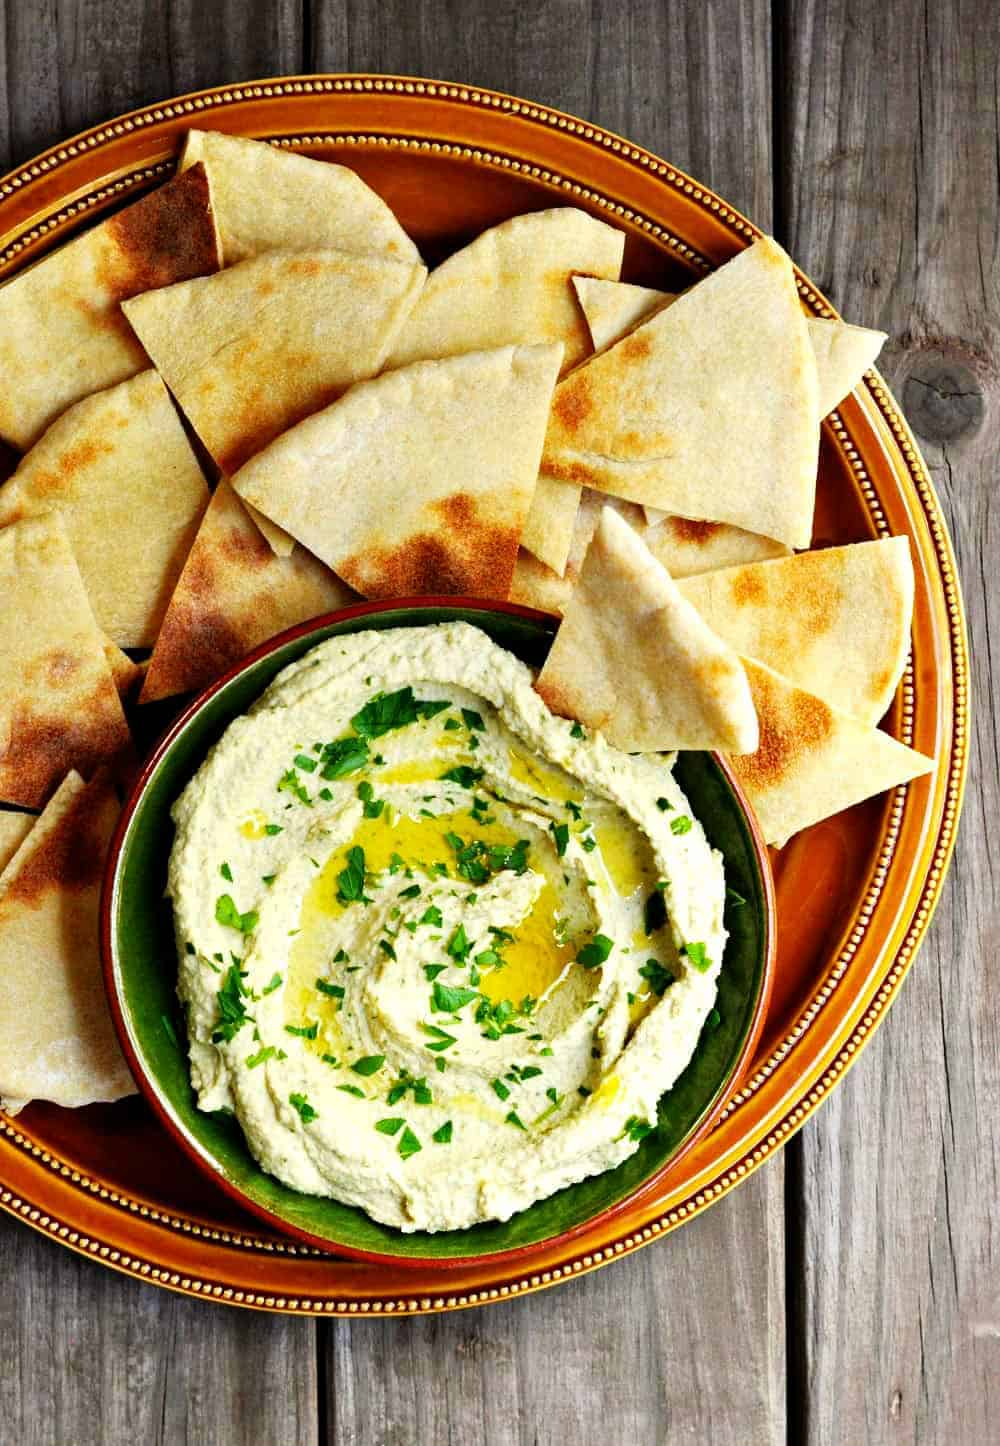 White-Bean-Hummus served on a platter